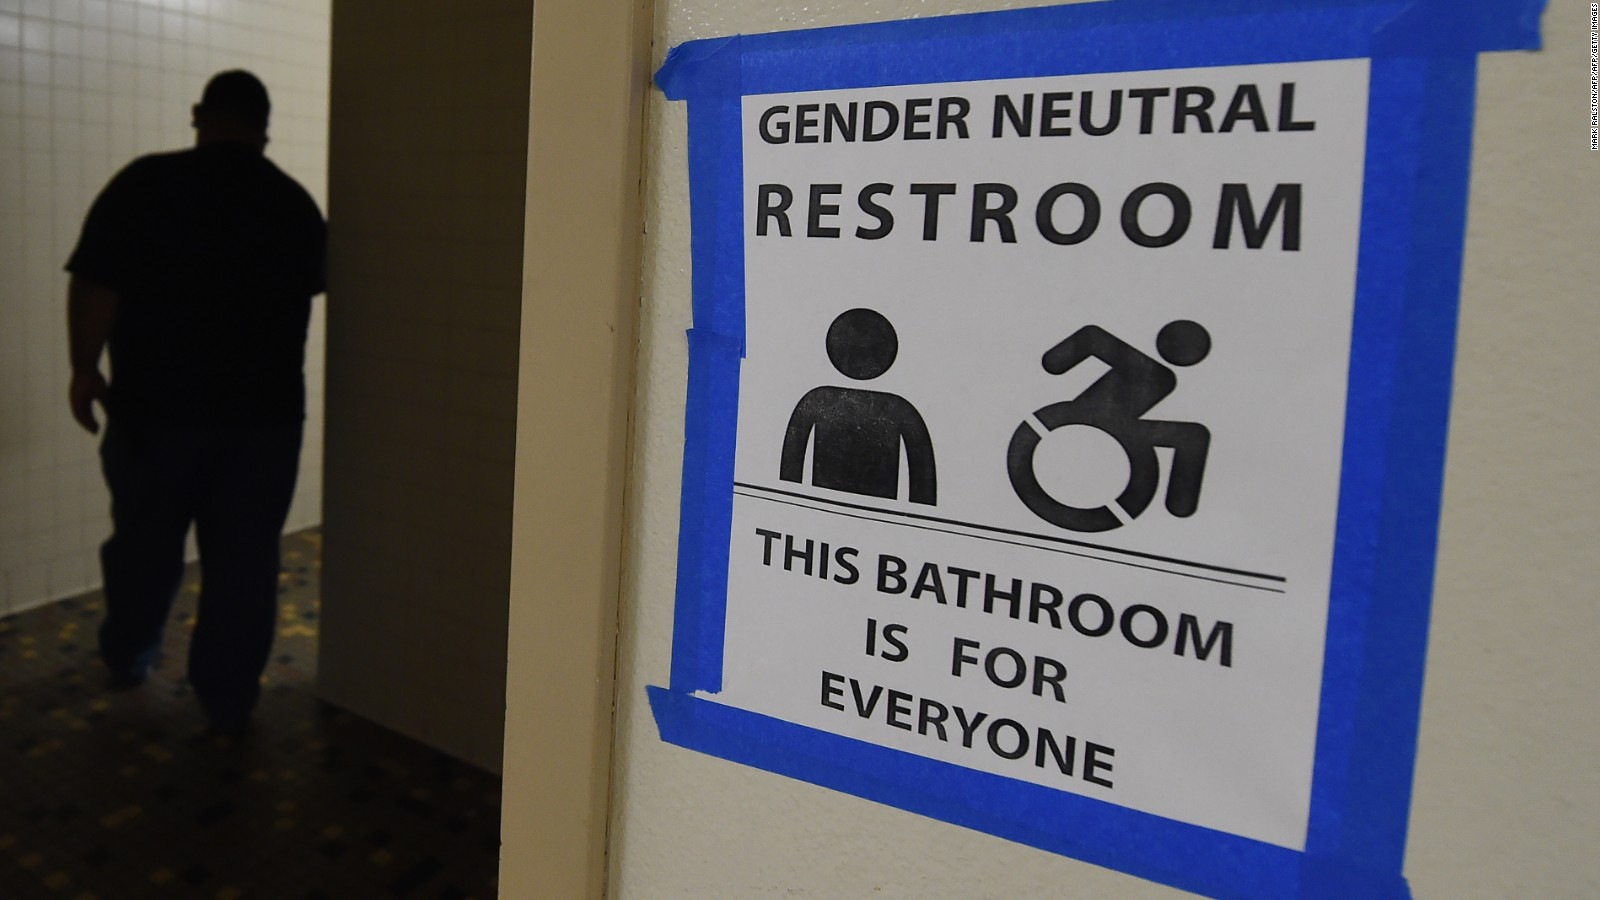 Transgender rights: 'We need a restroom revolution' - CNN on waiting for the bathroom, go hotel bathroom, i can use the bathroom, urgency to use the bathroom, waiting to use the bathroom, can i go to space, unable to go to bathroom, can i go too, went to bathroom, can i go to school, need to use the bathroom, meme don't stink up the bathroom, urge to go to bathroom, clip art going to the bathroom,